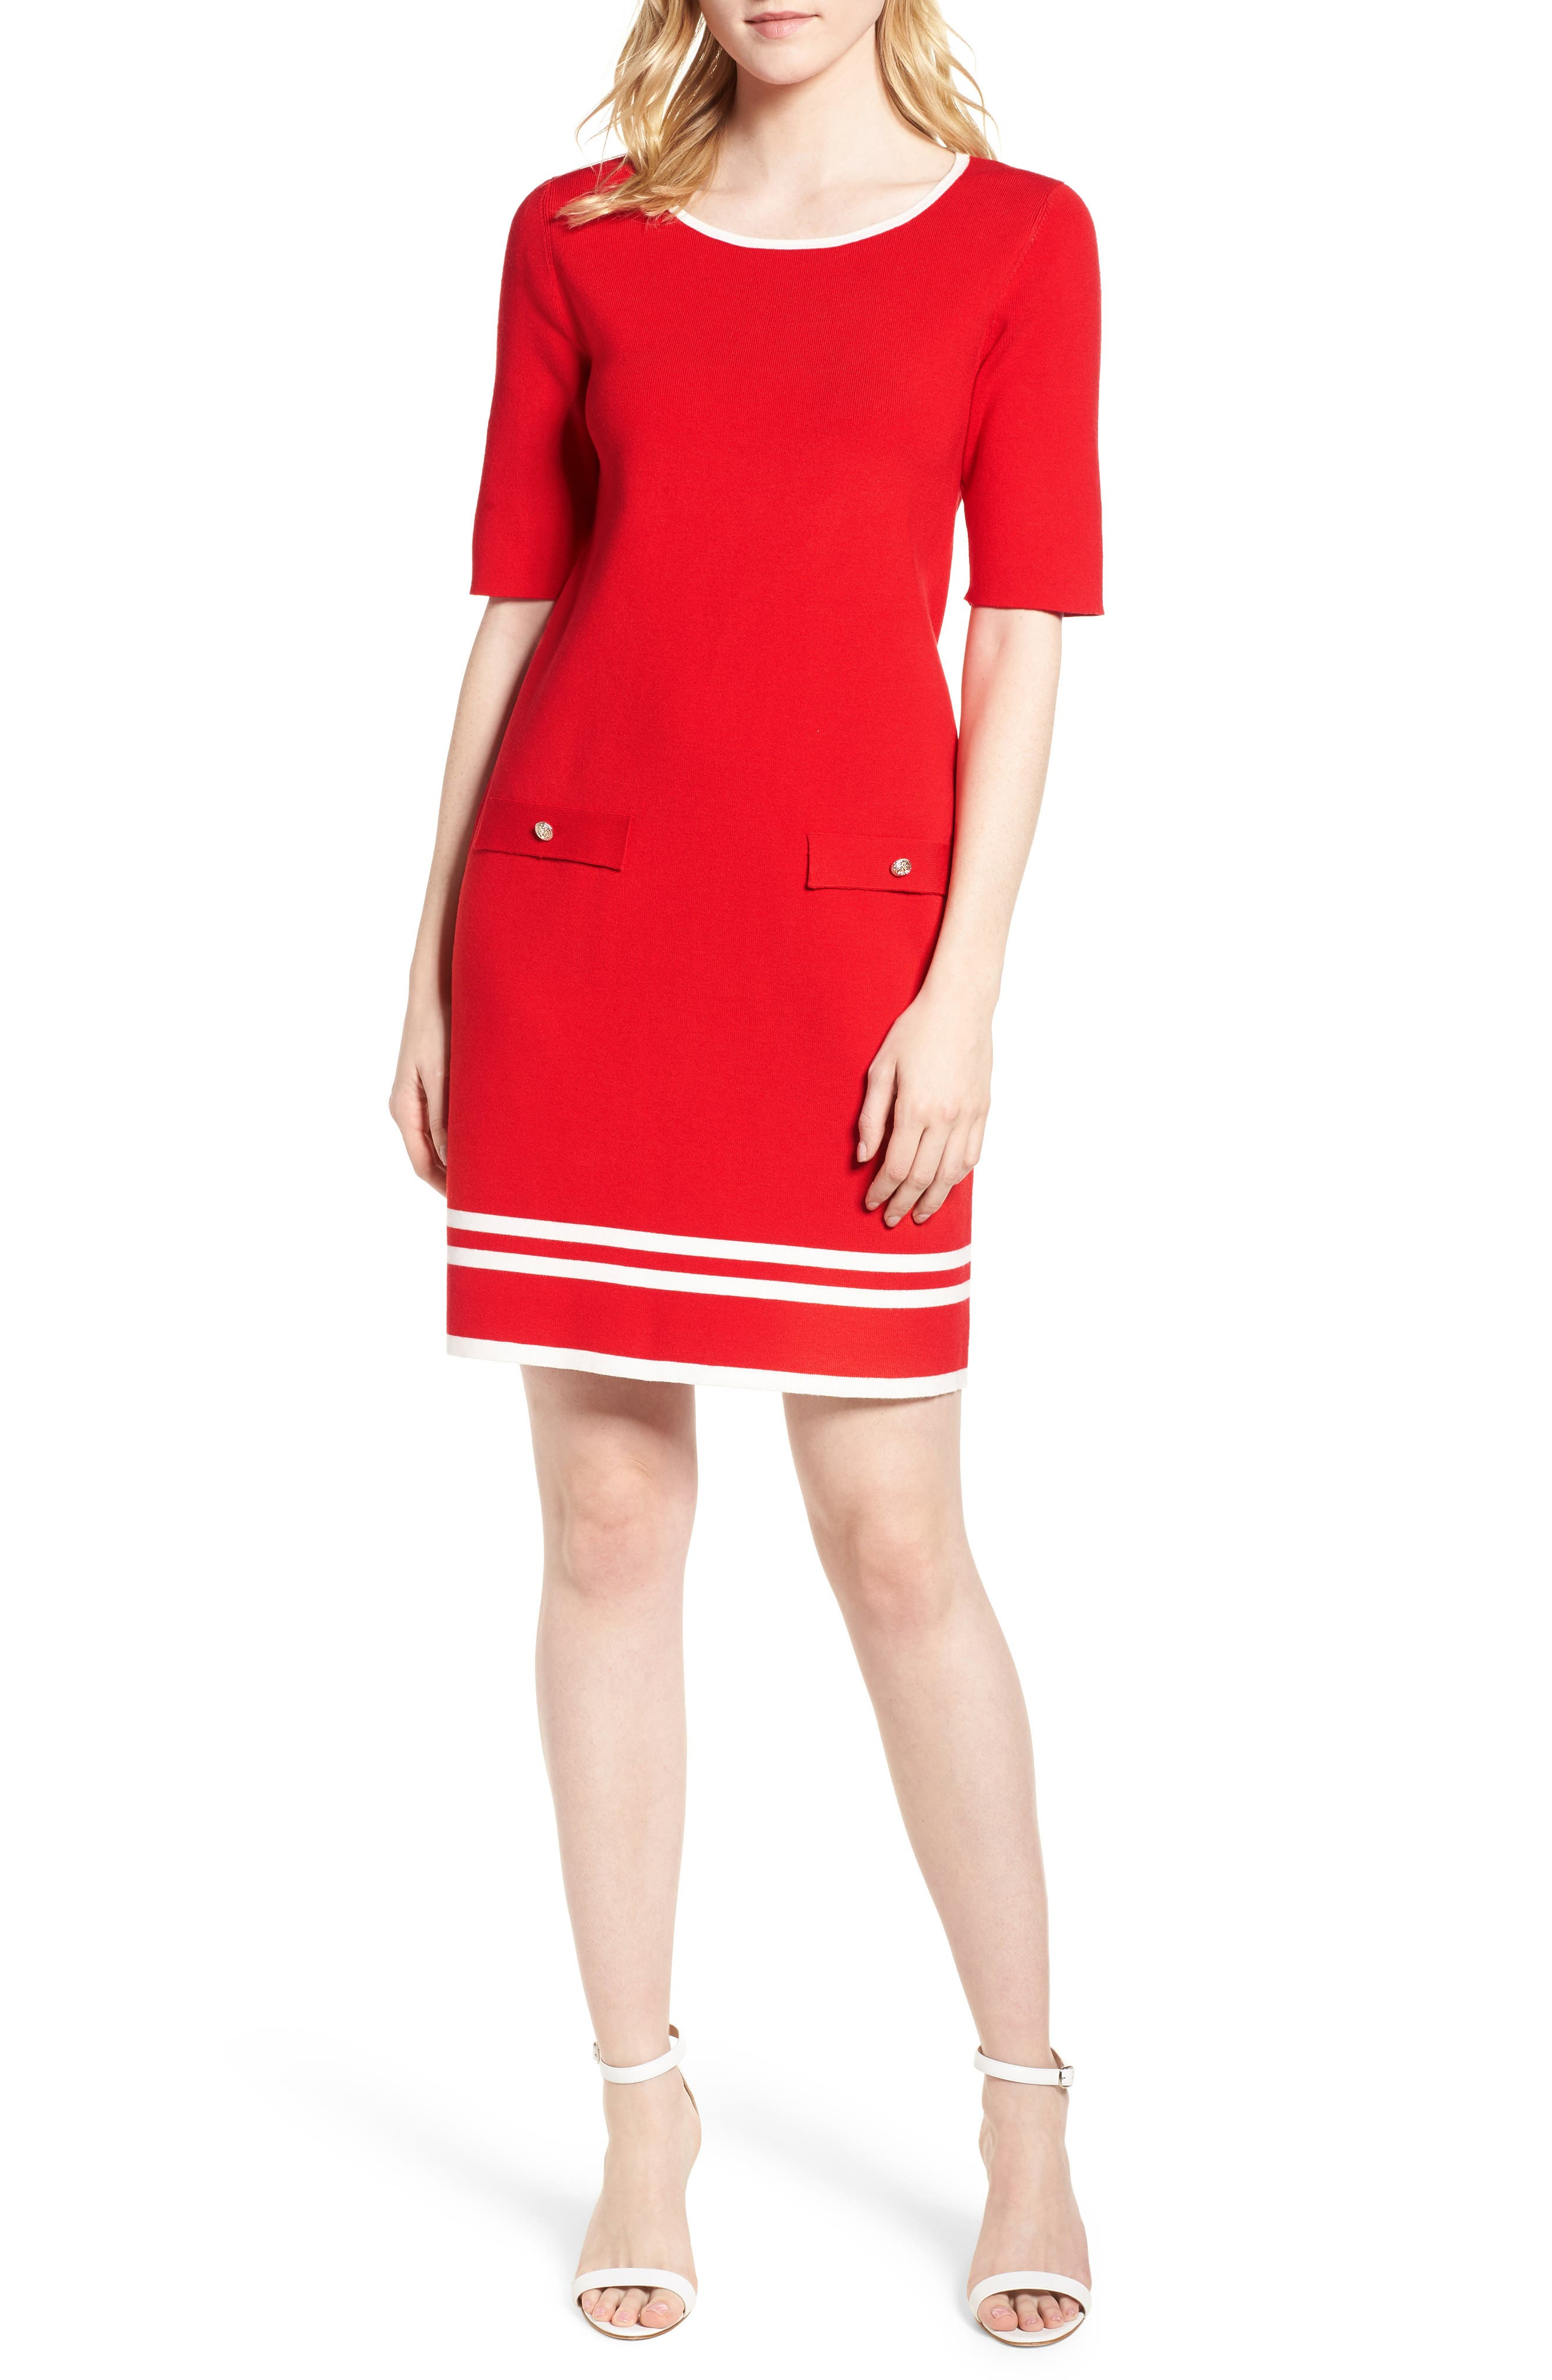 Ann Klein New York Stripe Border Knit Sheath Dress